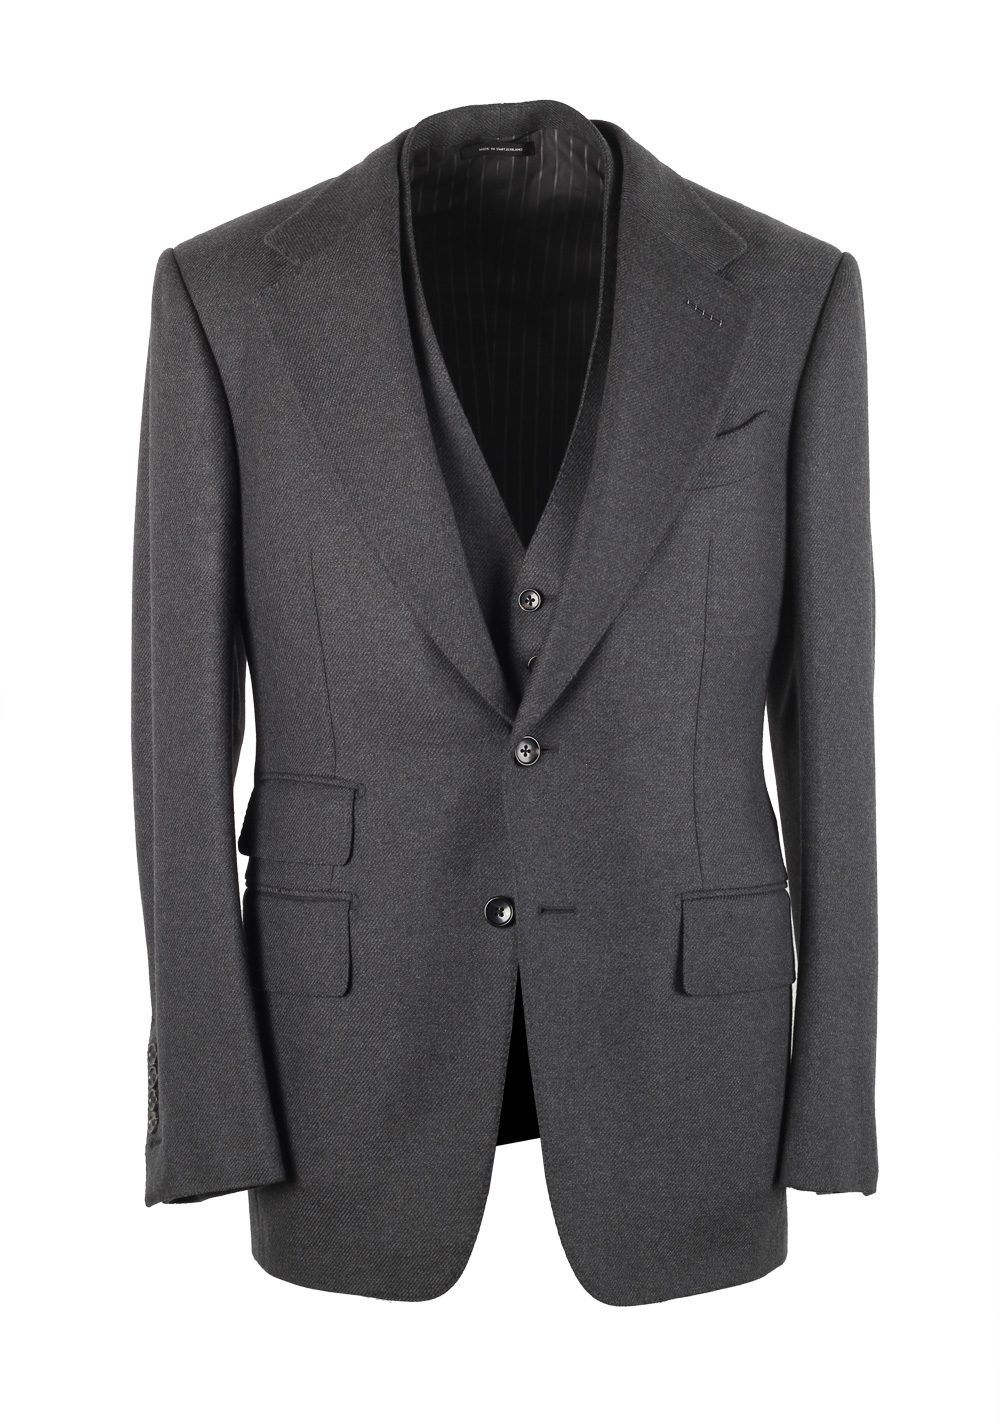 TOM FORD Shelton Solid Gray 3 Piece Suit Size 46 / 36R U.S. Wool | Costume Limité